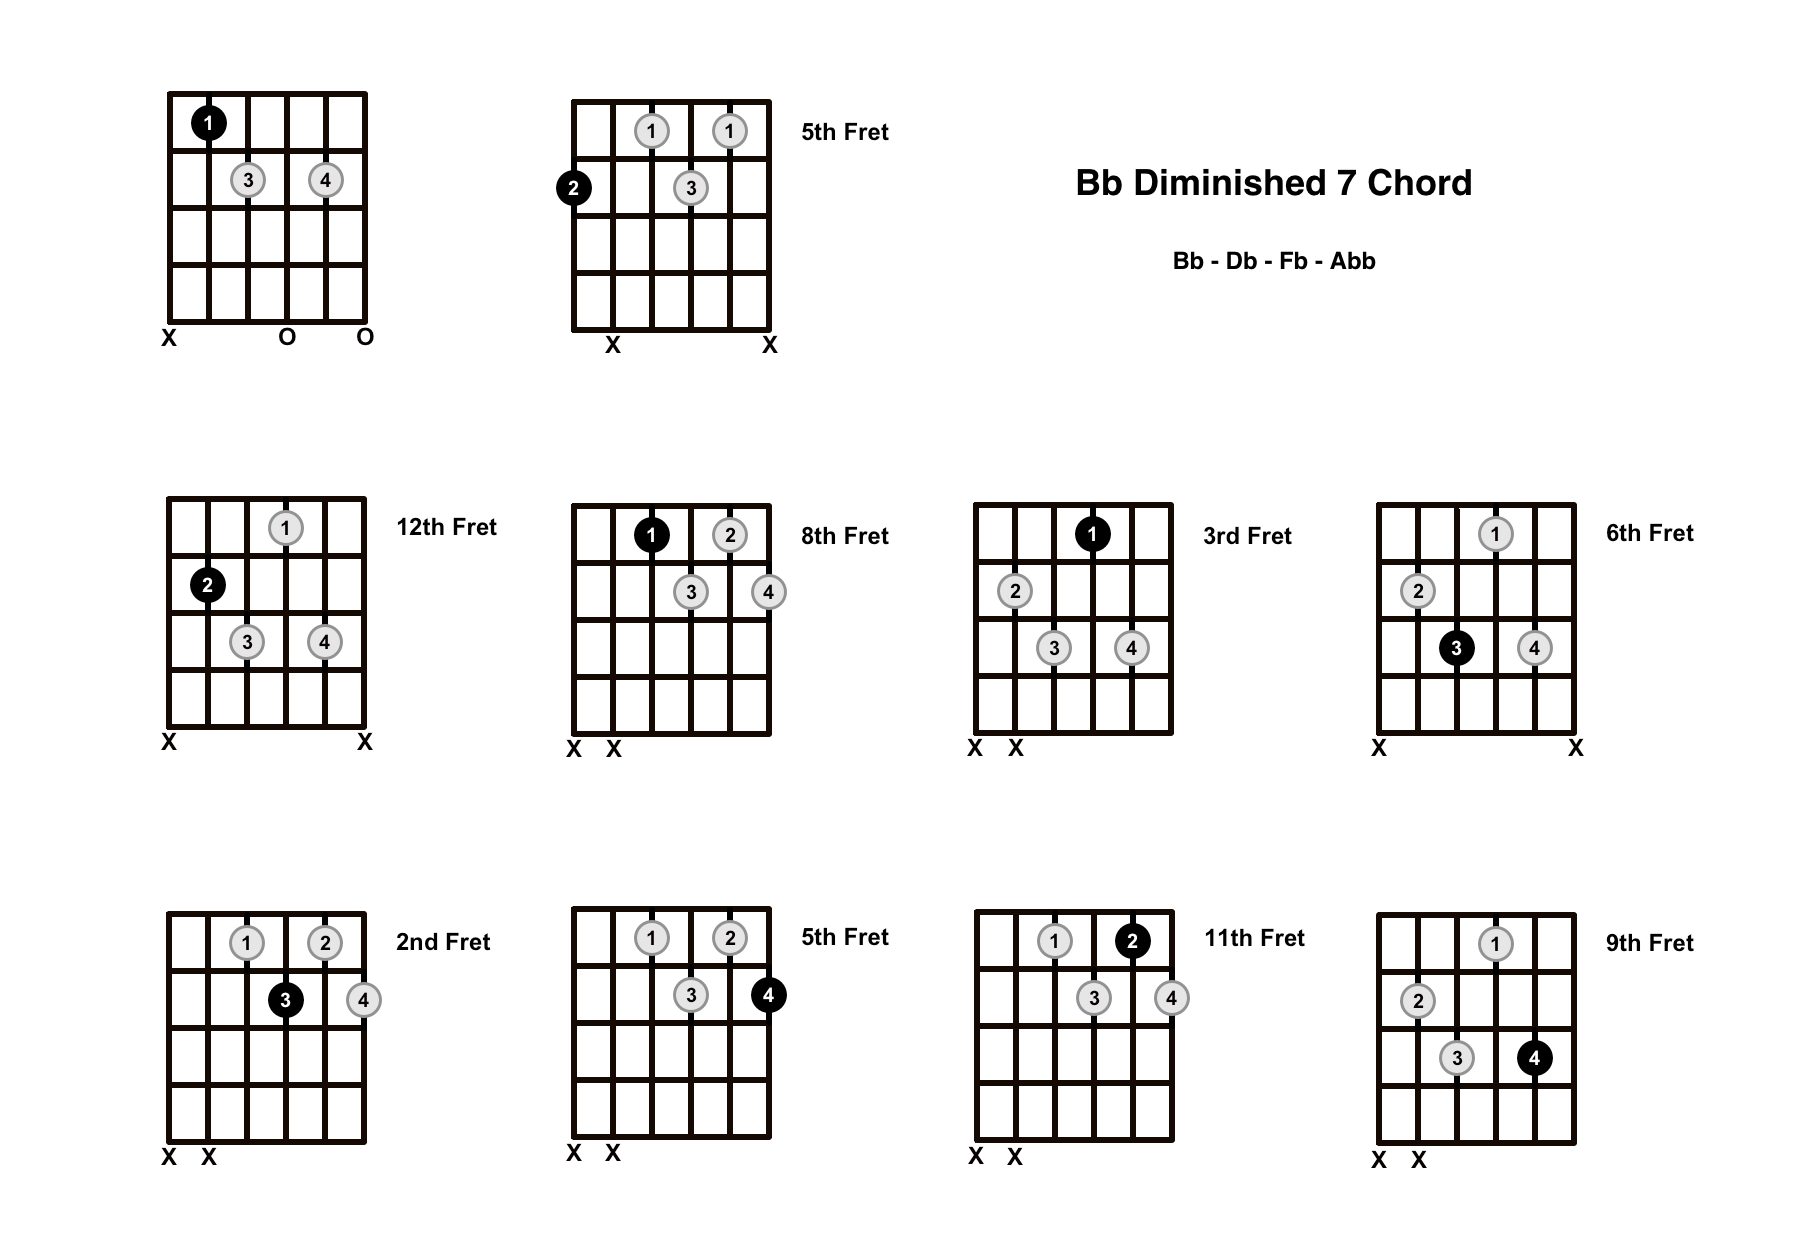 Bb Diminished 7 Chord On The Guitar (B Flat Dim 7) – Diagrams, Finger Positions and Theory